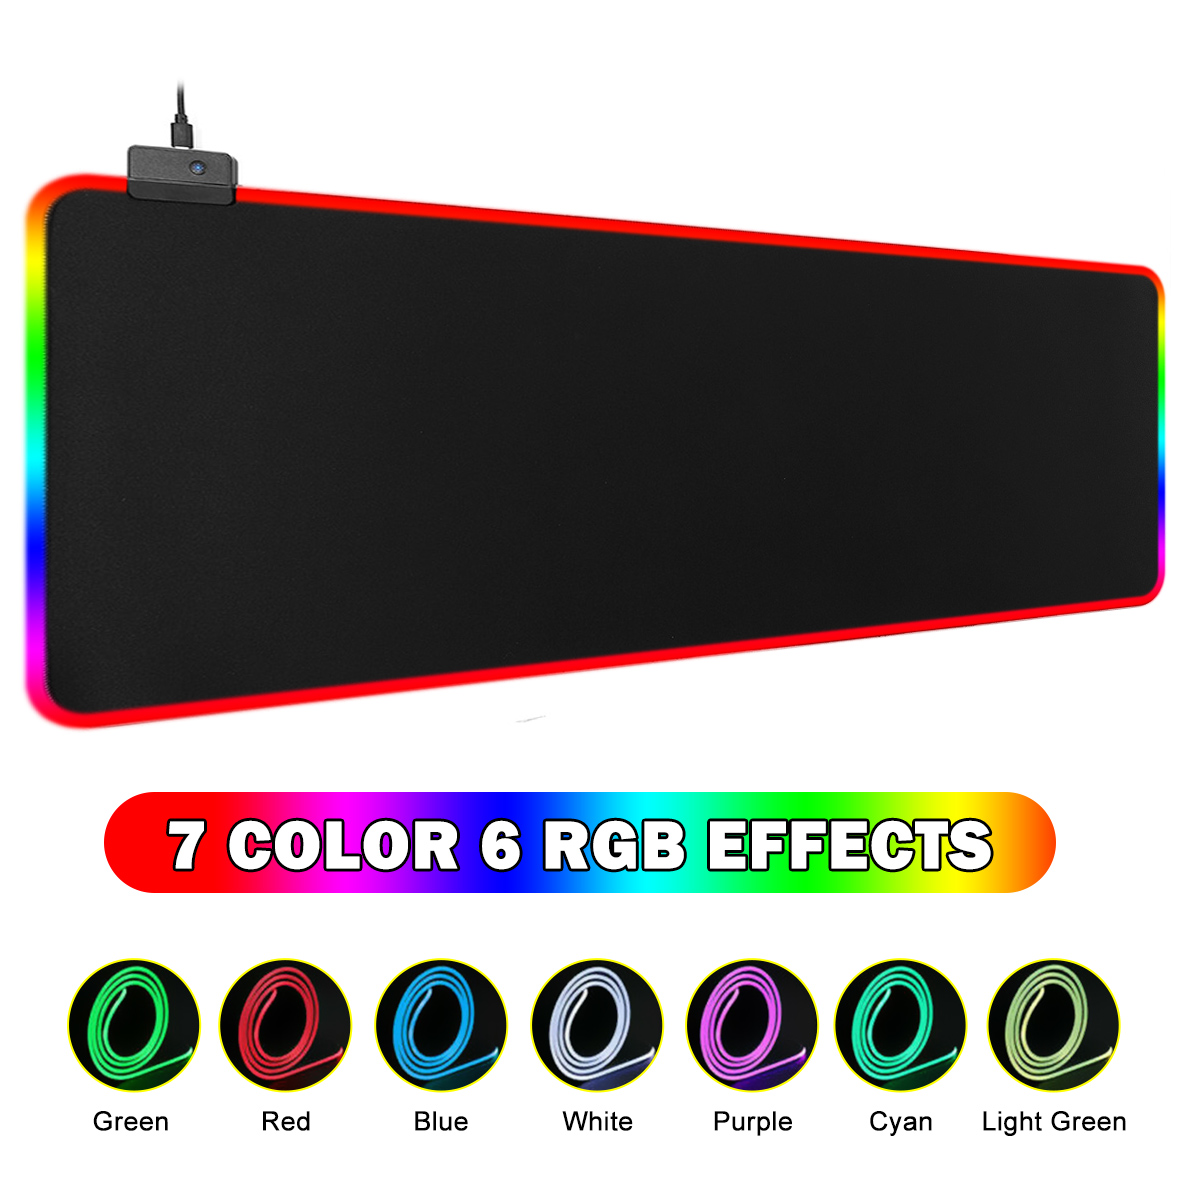 Große Gaming Mouse Pad RGB USB LED Glowing Gamer Tastatur Mauspad Mäuse Matte 14 Beleuchtung Modi Für PC Computer Laptop